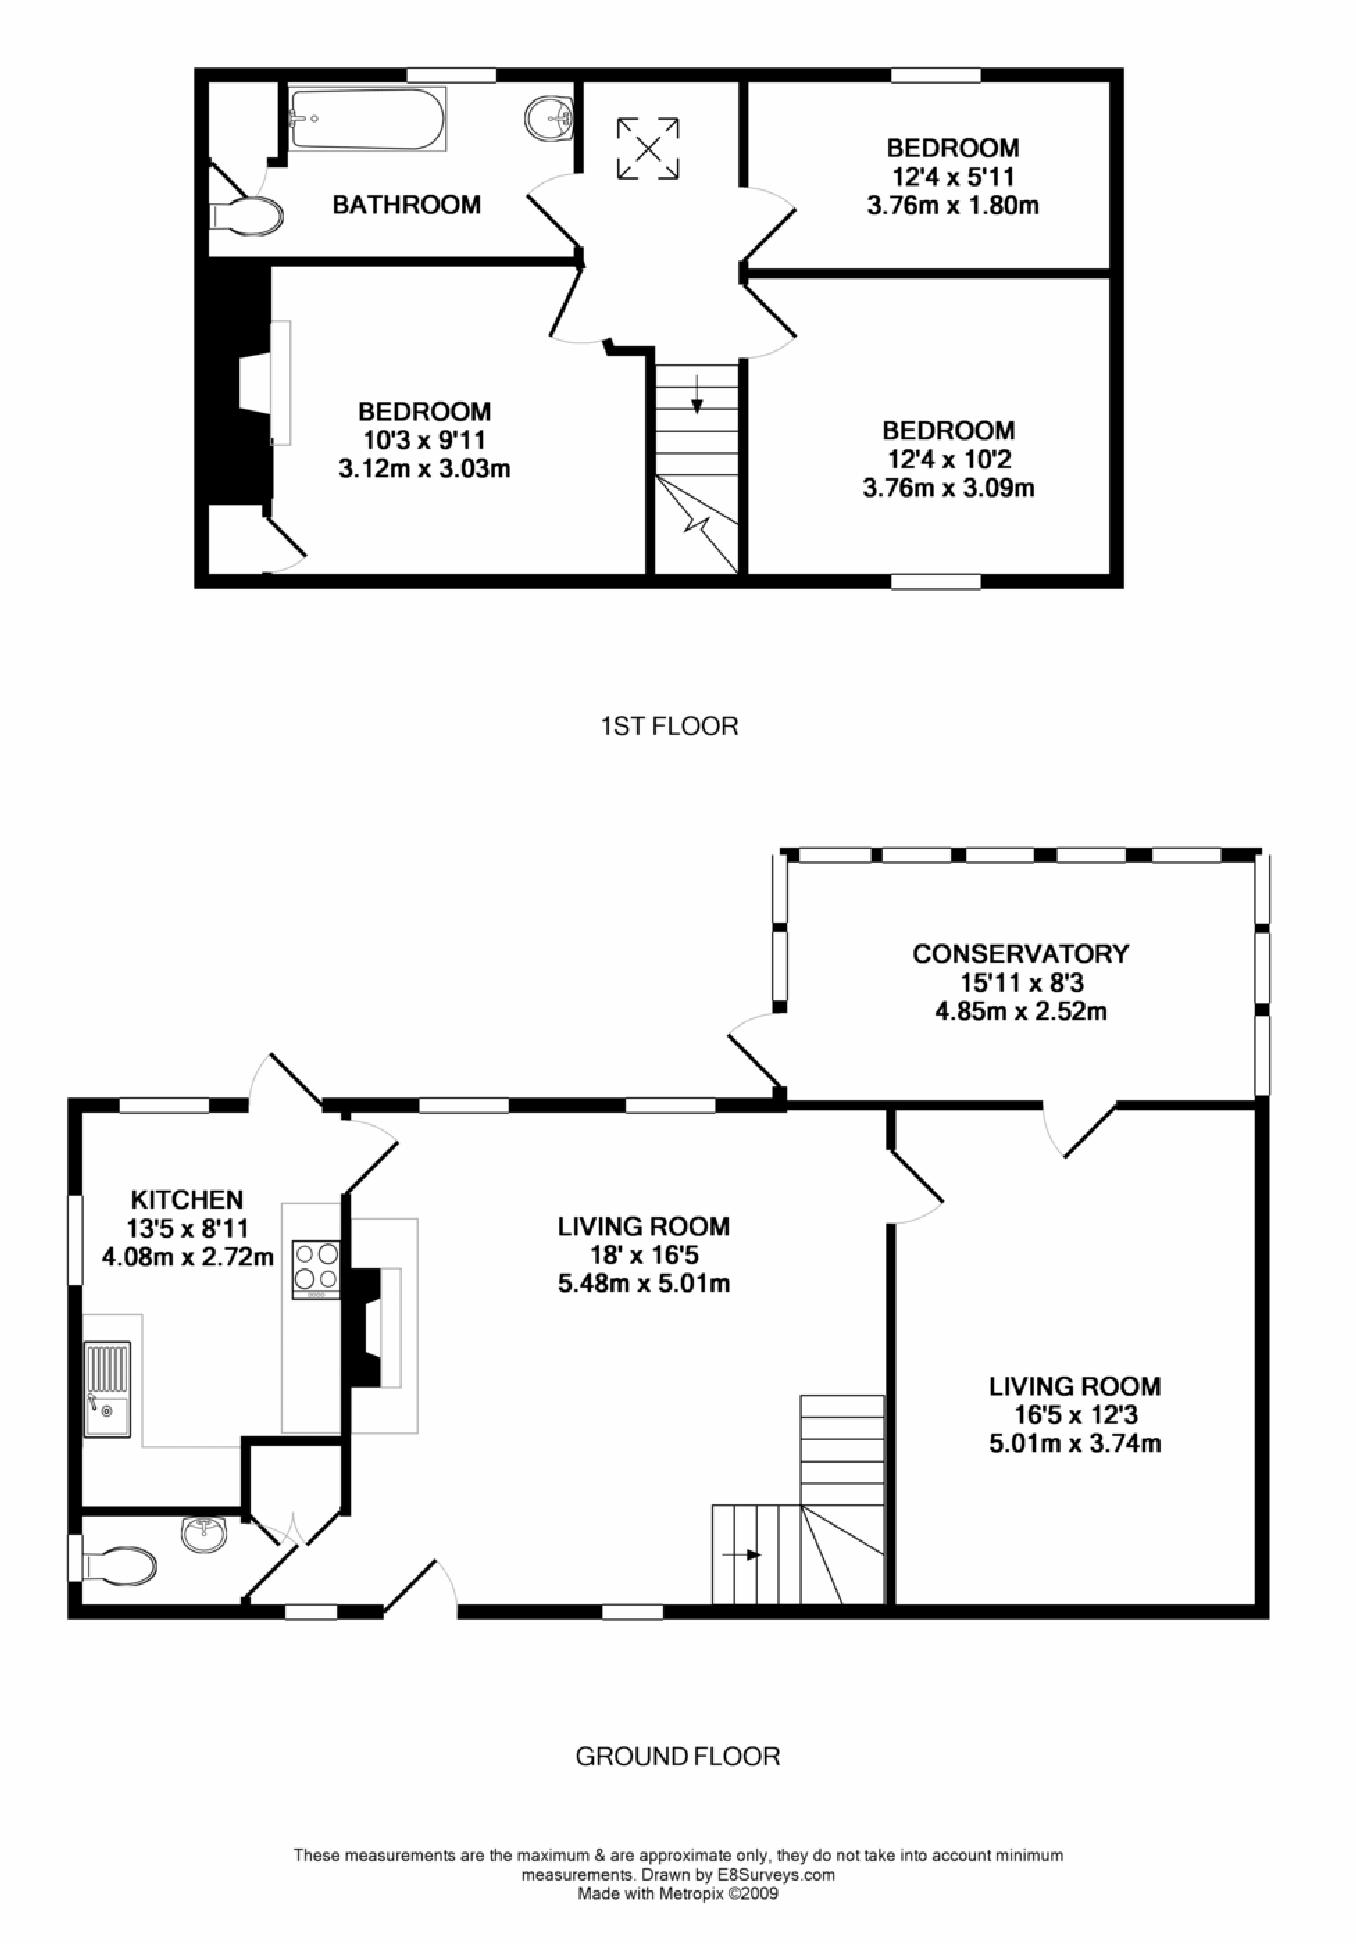 daycare floor plans download trend home design and decor